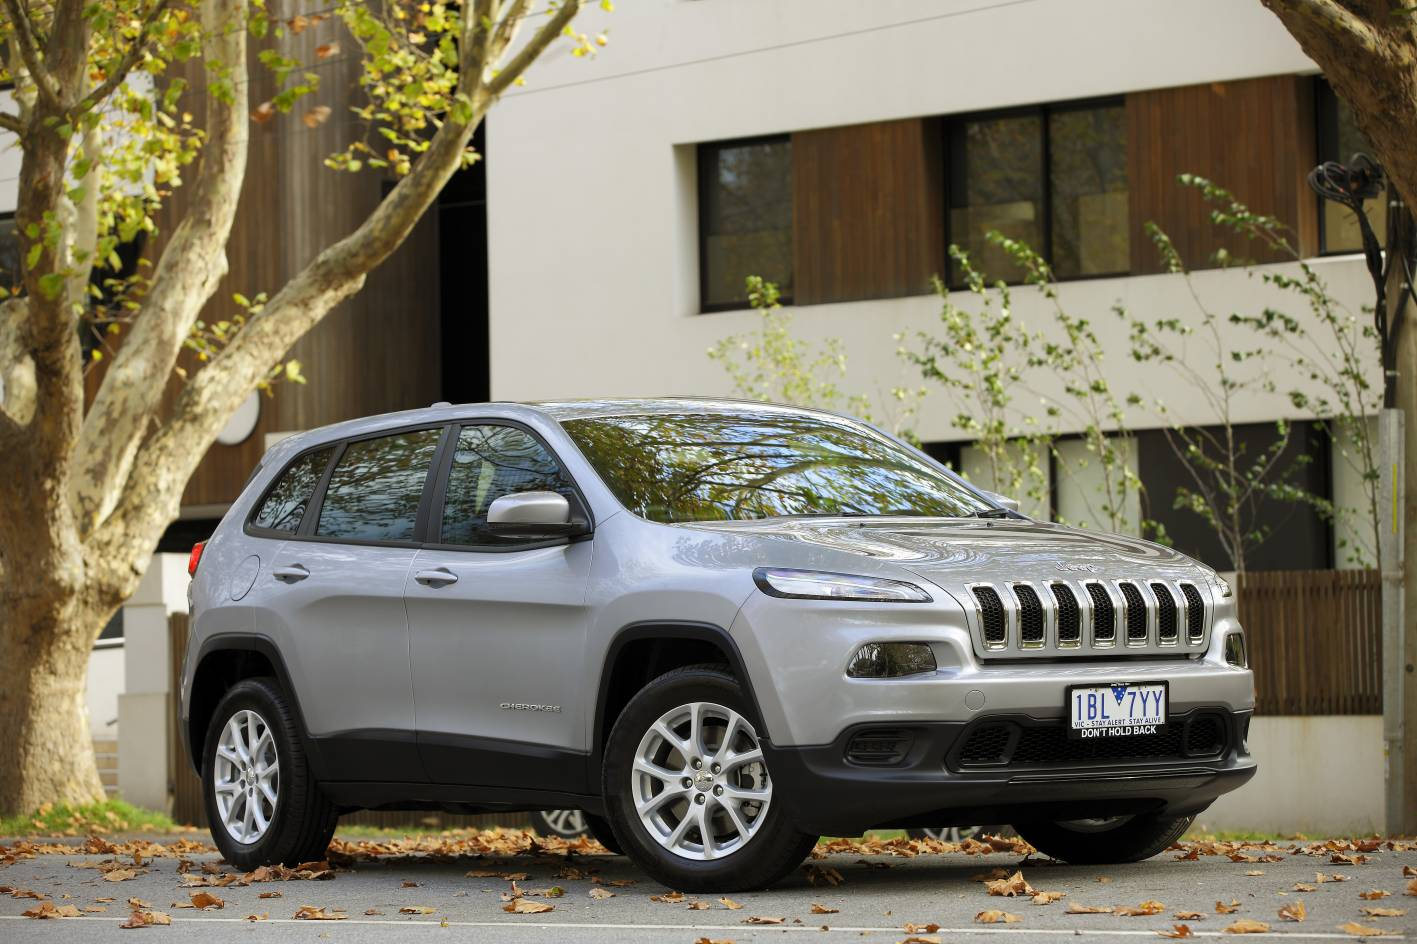 2014 jeep cherokee sport. Cars Review. Best American Auto & Cars Review